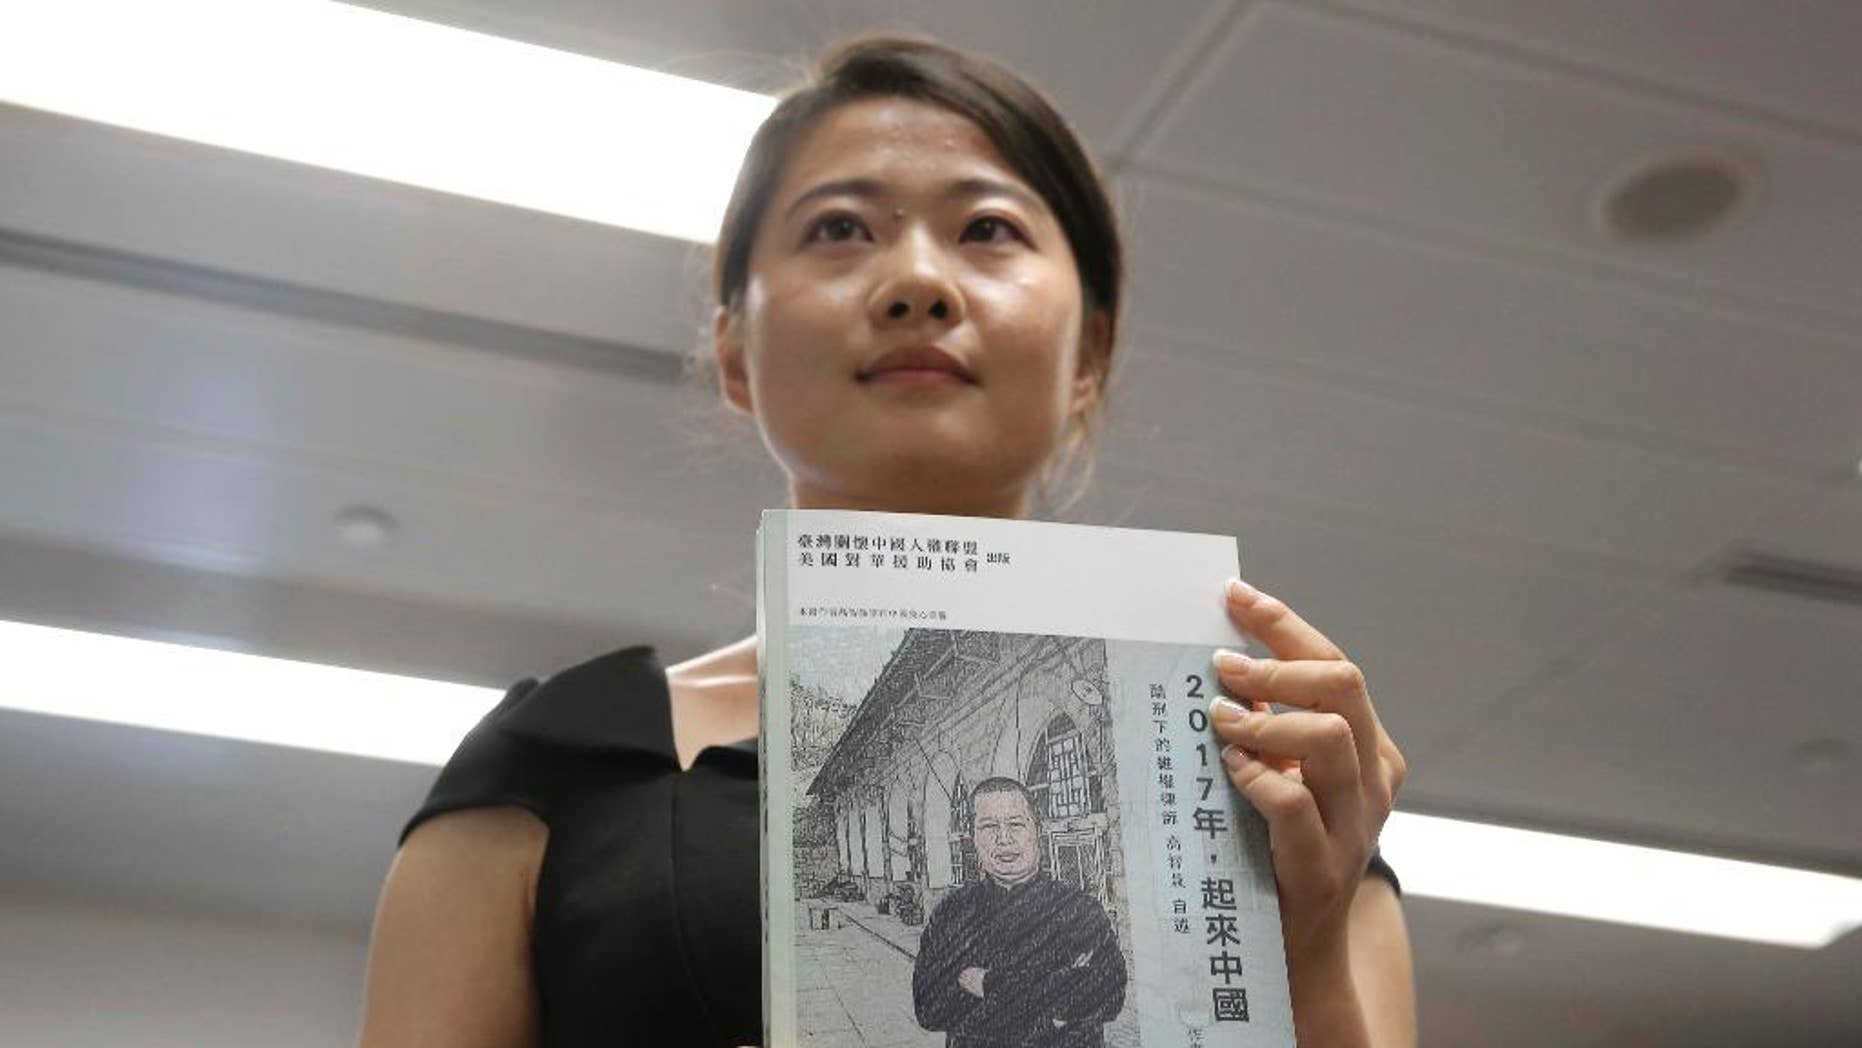 """Grace Geng, the daughter of one of China's most prominent human rights lawyers, Gao Zhisheng, attends at the Hong Kong launch of a book, titled """"Stand Up China 2017 - China's Hope: What I Learned During Five Years as a Political Prisoner"""", written by her father, at a news conference in Hong Kong, Tuesday, June 14, 2016. The book is a memoir by Gao in which he details the torture he says he endured while detained and jailed as well as three years of being held in solitary confinement. (AP Photo/Kin Cheung)"""